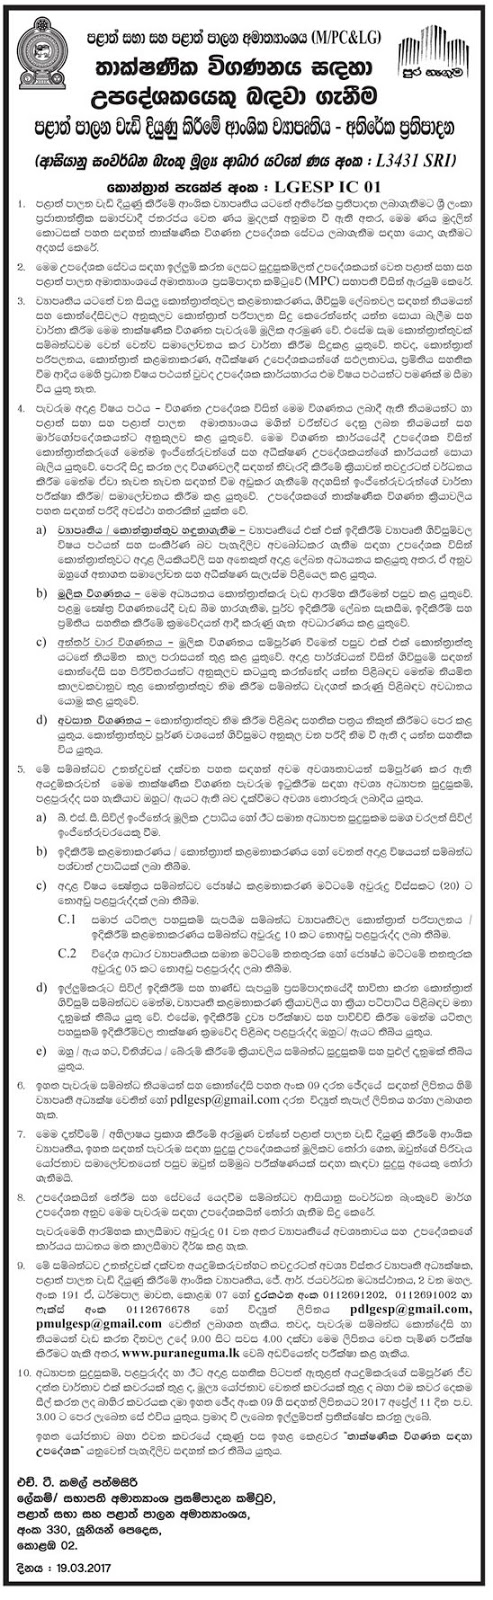 Sri Lankan Government Job Vacancies at Ministry of Provincial Councils & Local Government for Individual Consultant (for Technical Audit)